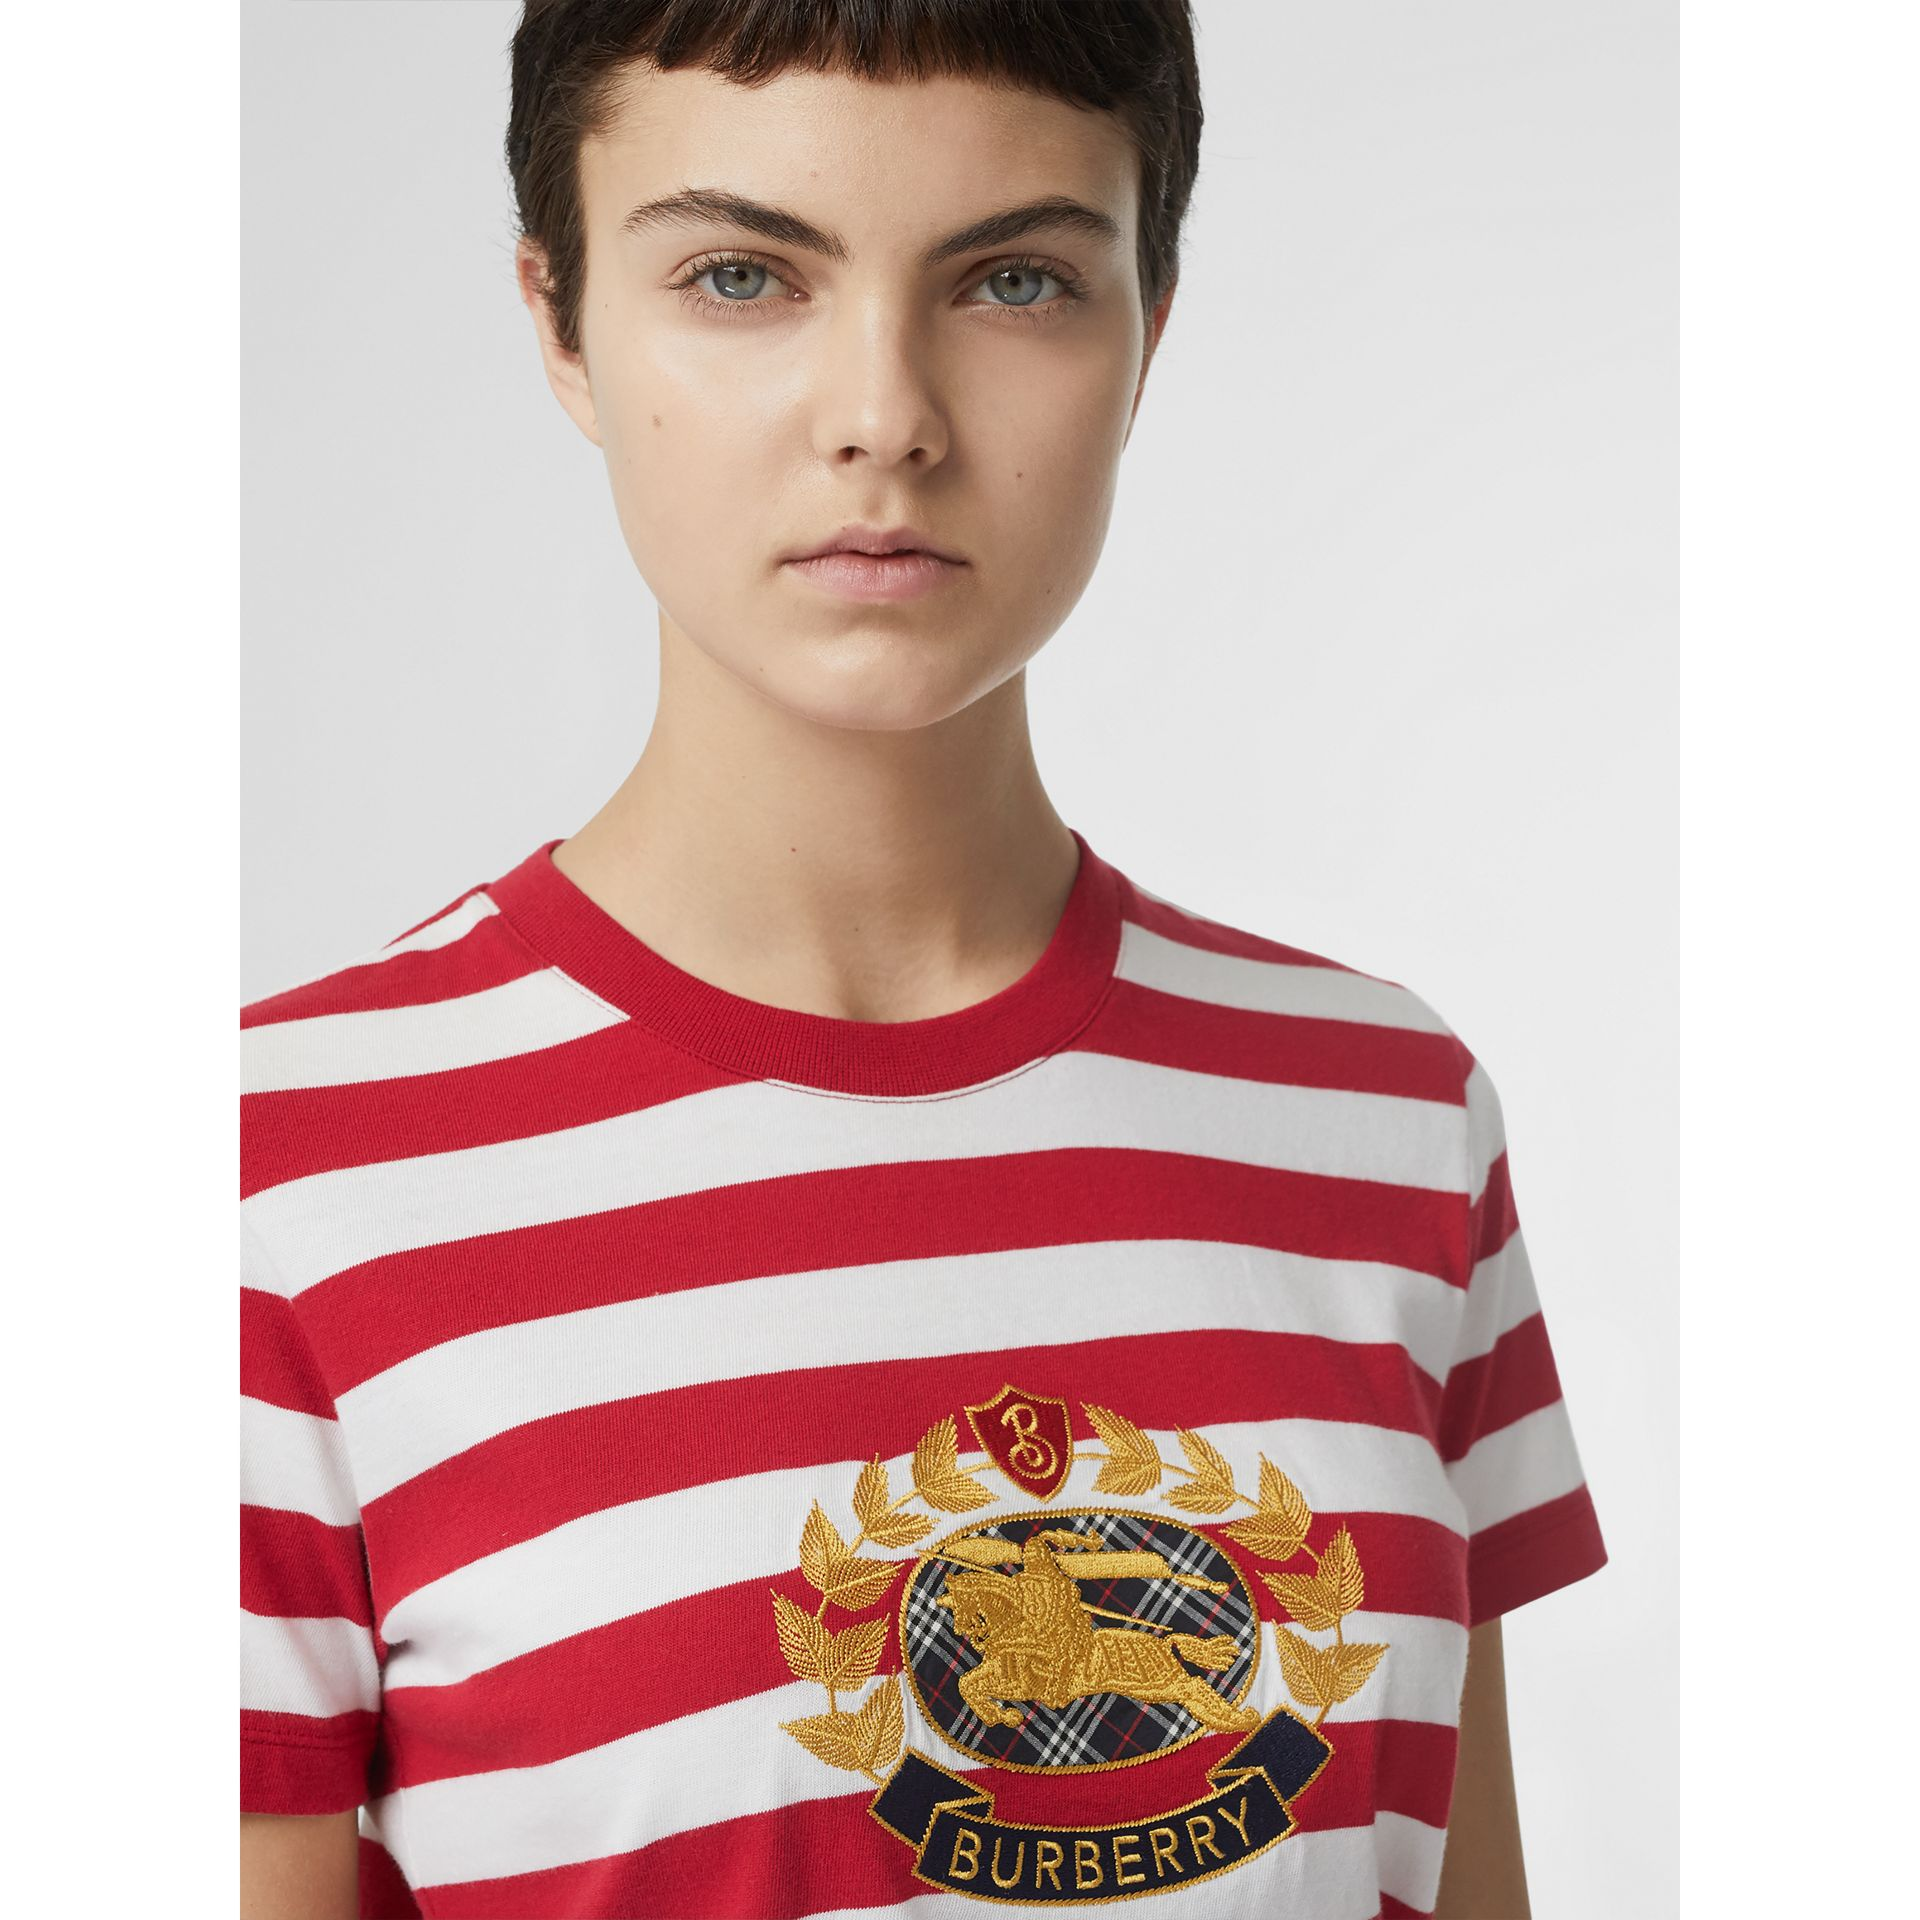 Crest Appliqué Striped Cotton T-shirt in Cadmium Red - Women | Burberry United States - gallery image 1